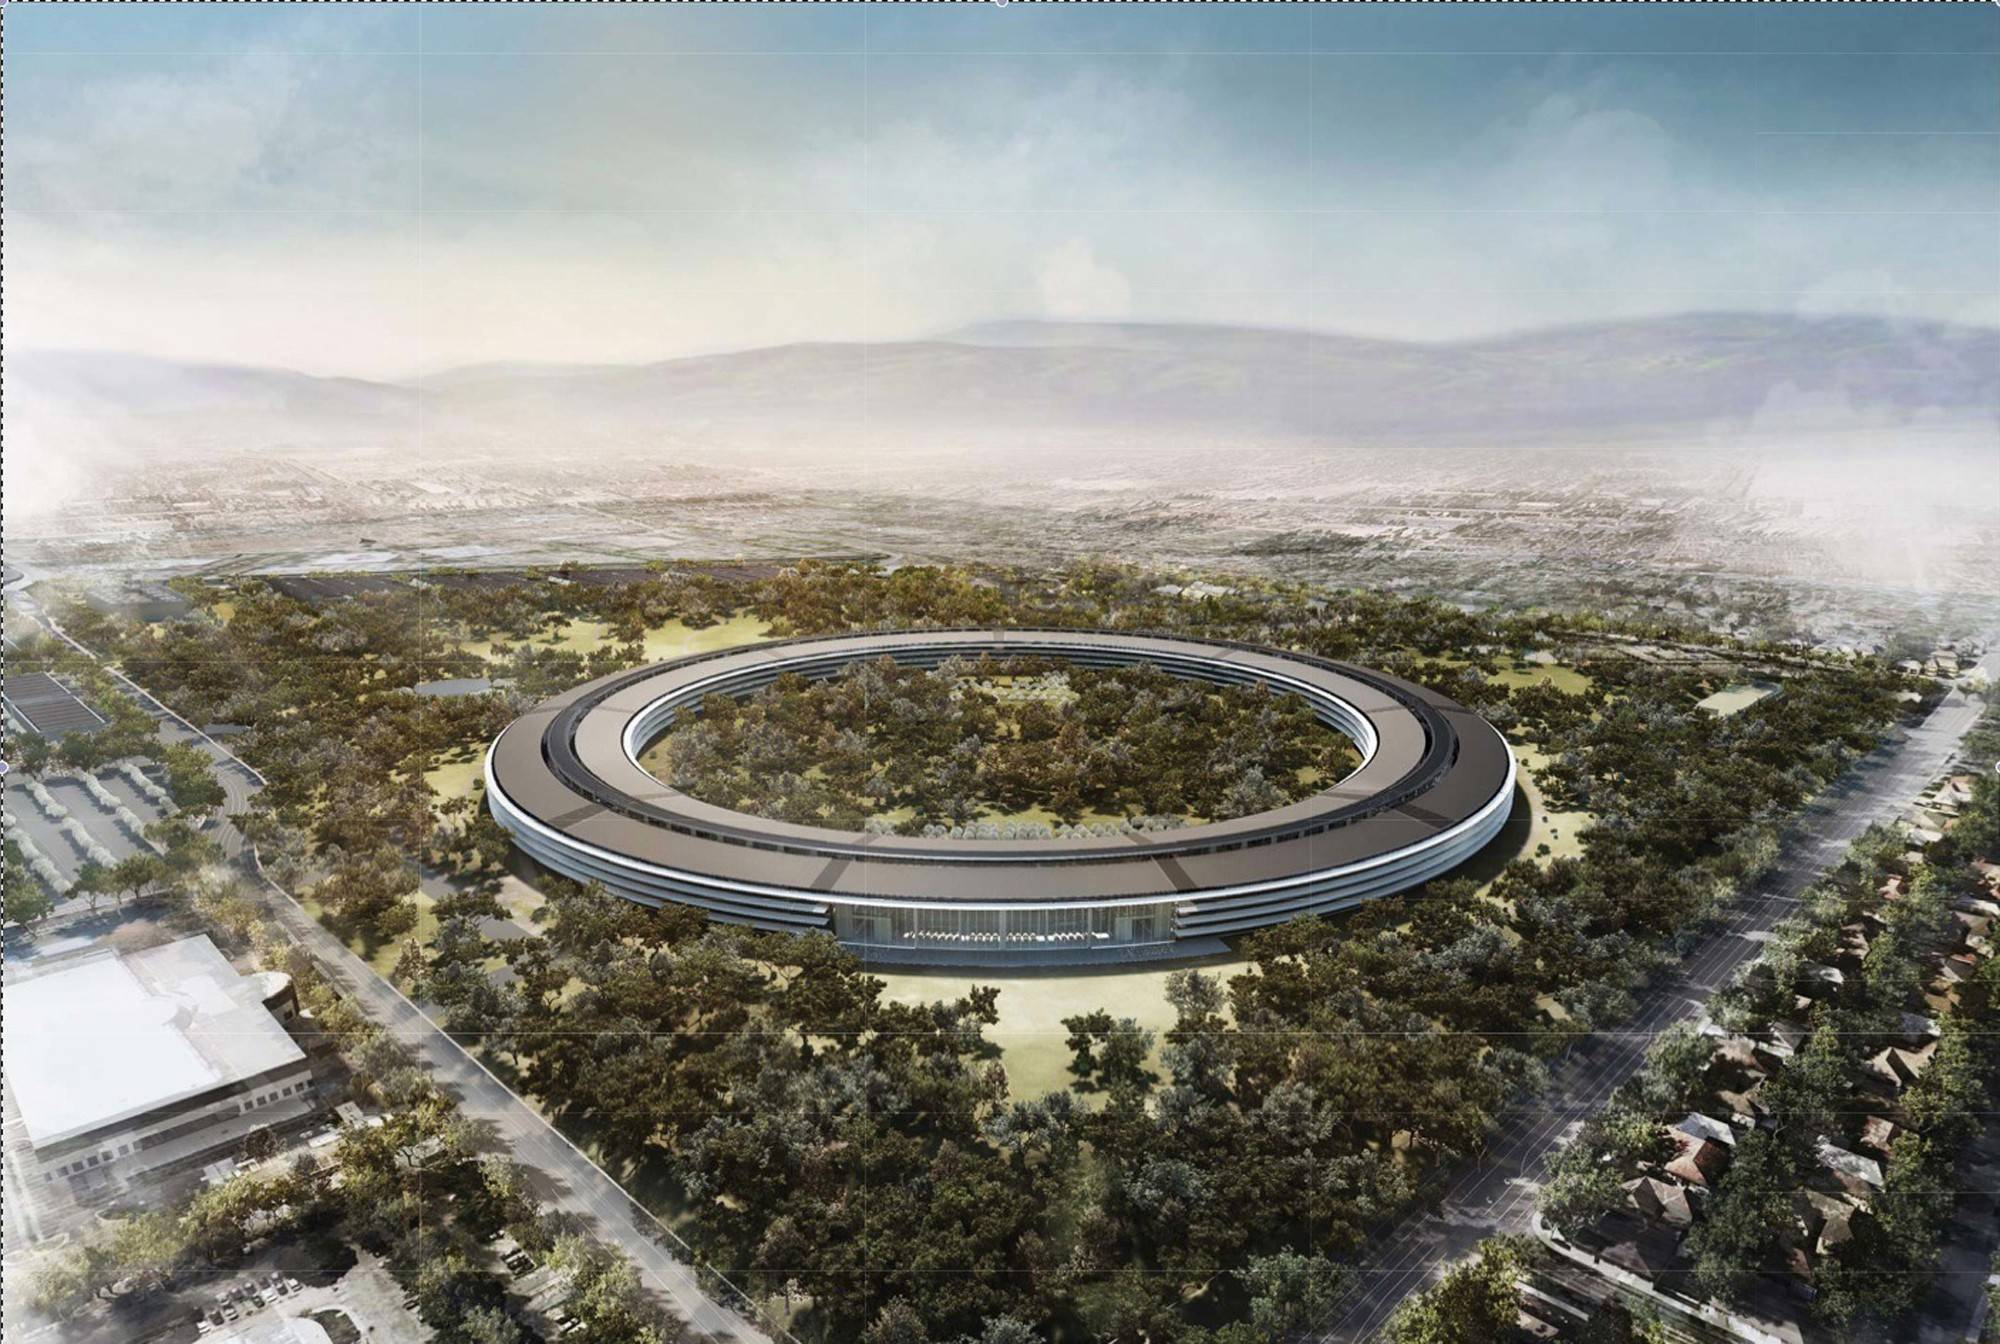 New apple office cupertino June 2017 An Aerial Rendering Of The Planned Apple Computer Headquarters Before It Was Built In Cupertino Daily Herald Suburbs Eye New Apple Campus Announced Wednesday